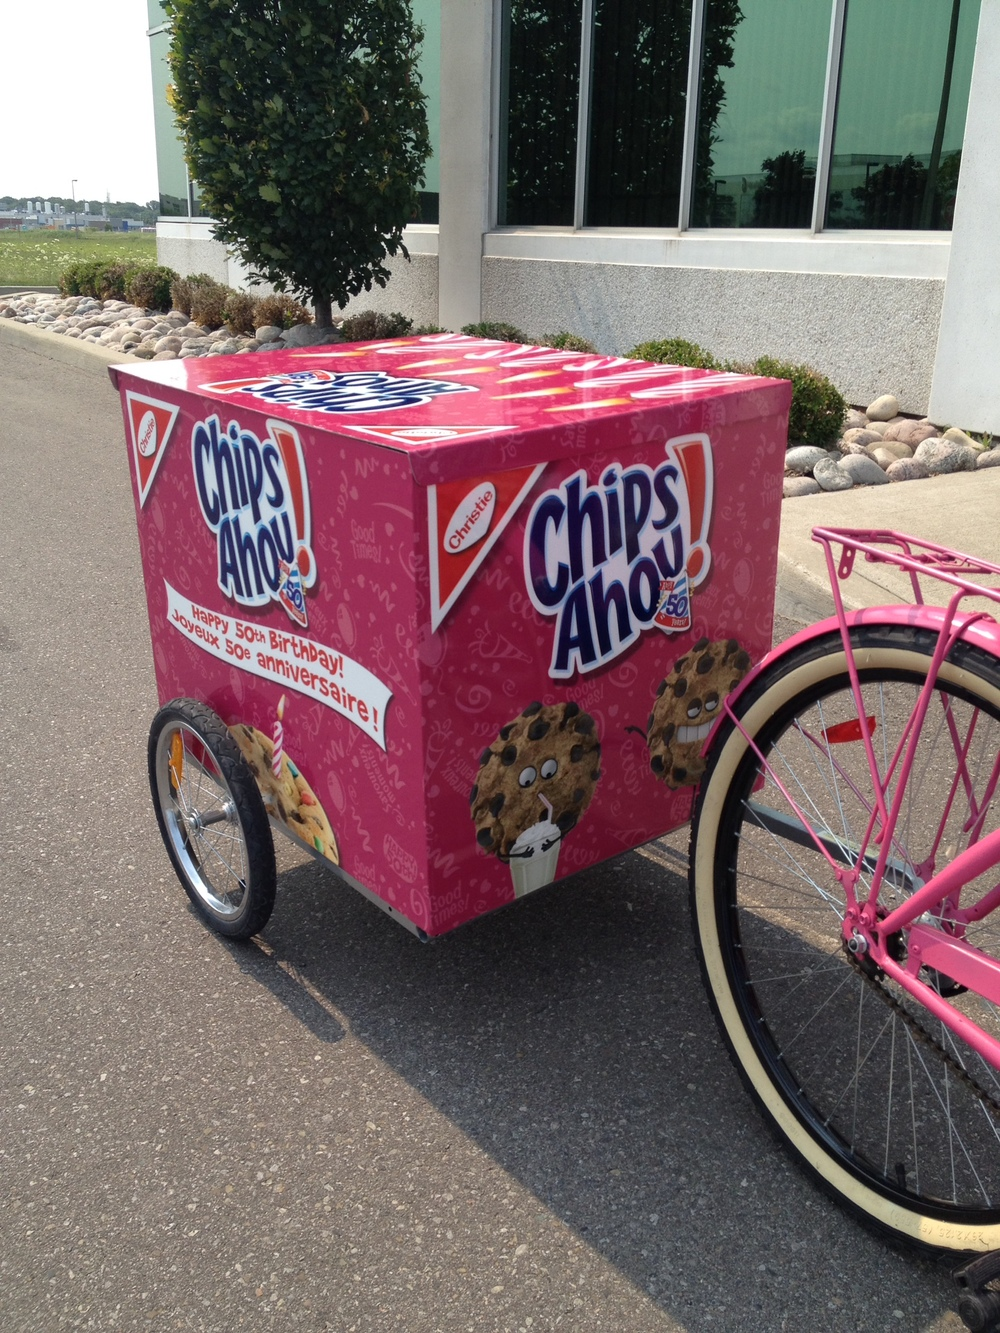 Bike trailer vinyl wrap - Chips Ahoy